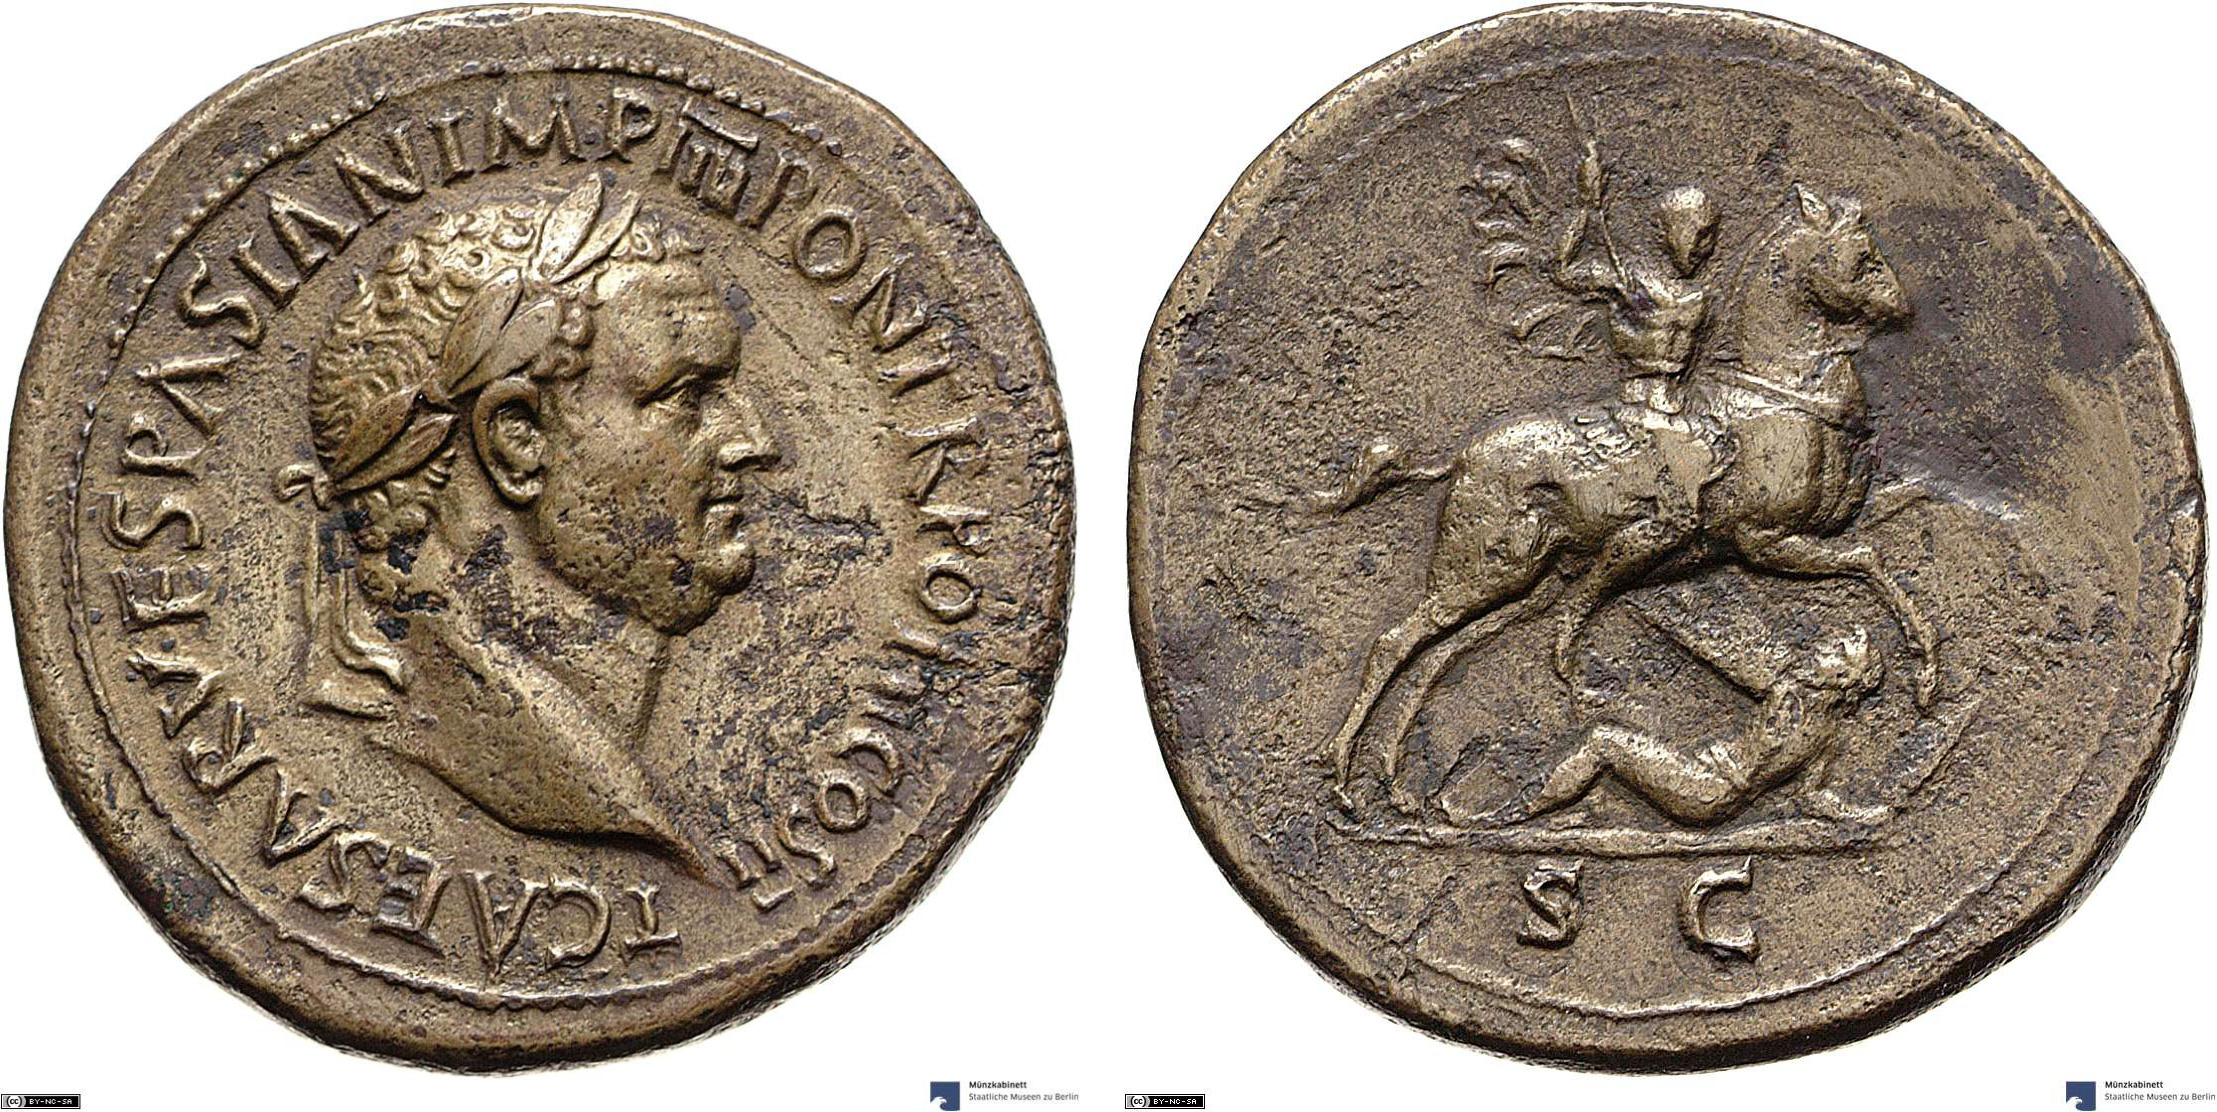 Sestertius showing Titus on horseback on reverse, minted in 72-73 AD under Titus, Roman Empire